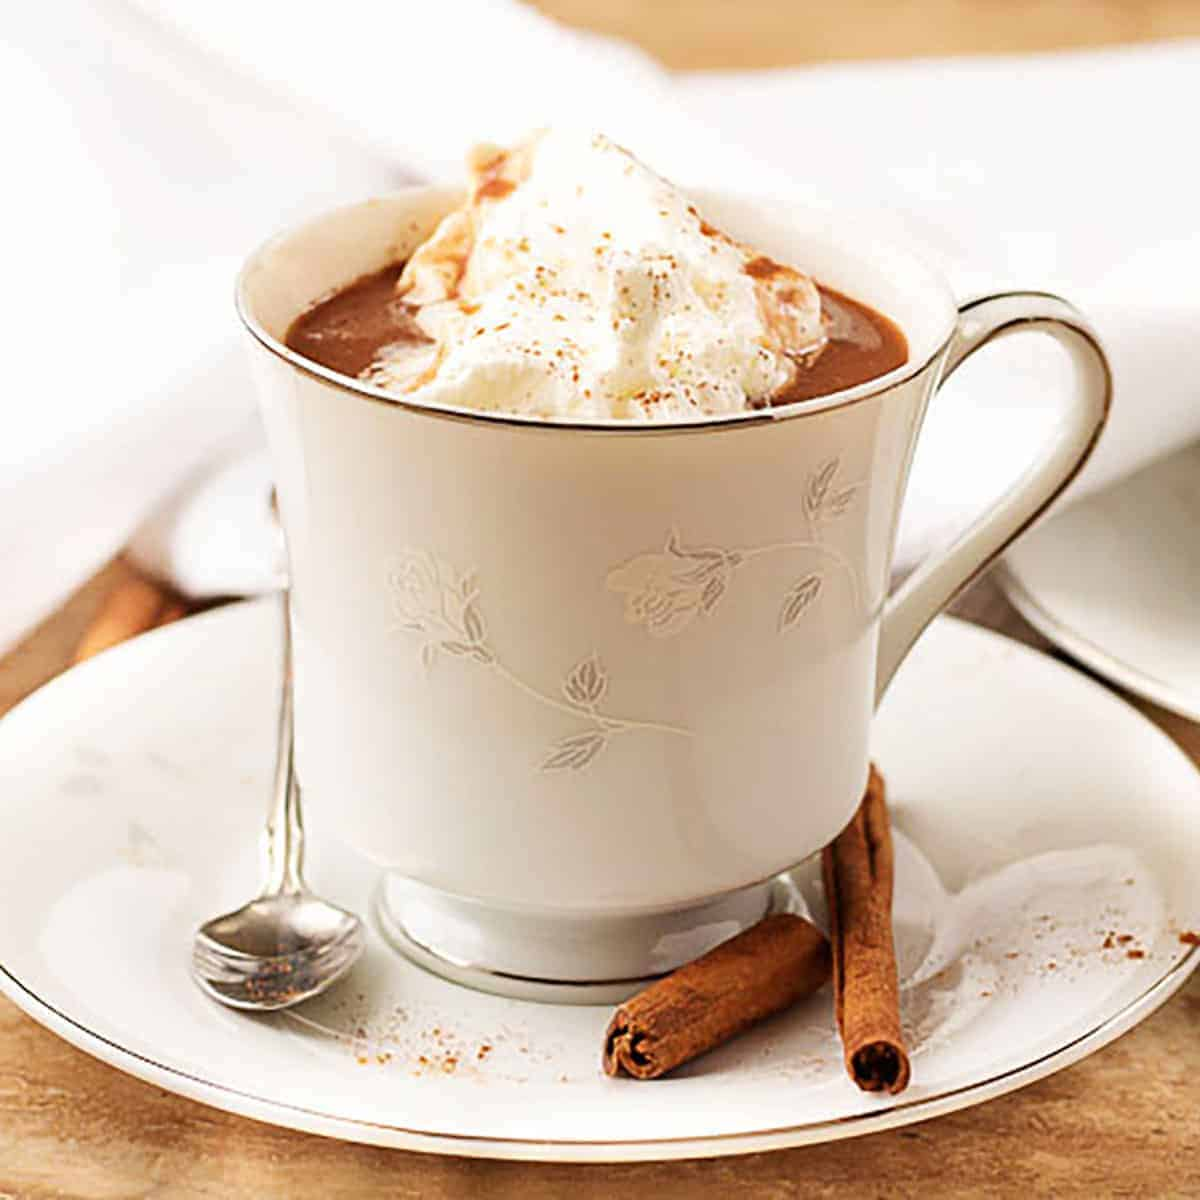 Chocolate hazelnut hot cocoa in a tea cup with cinnamon sticks.